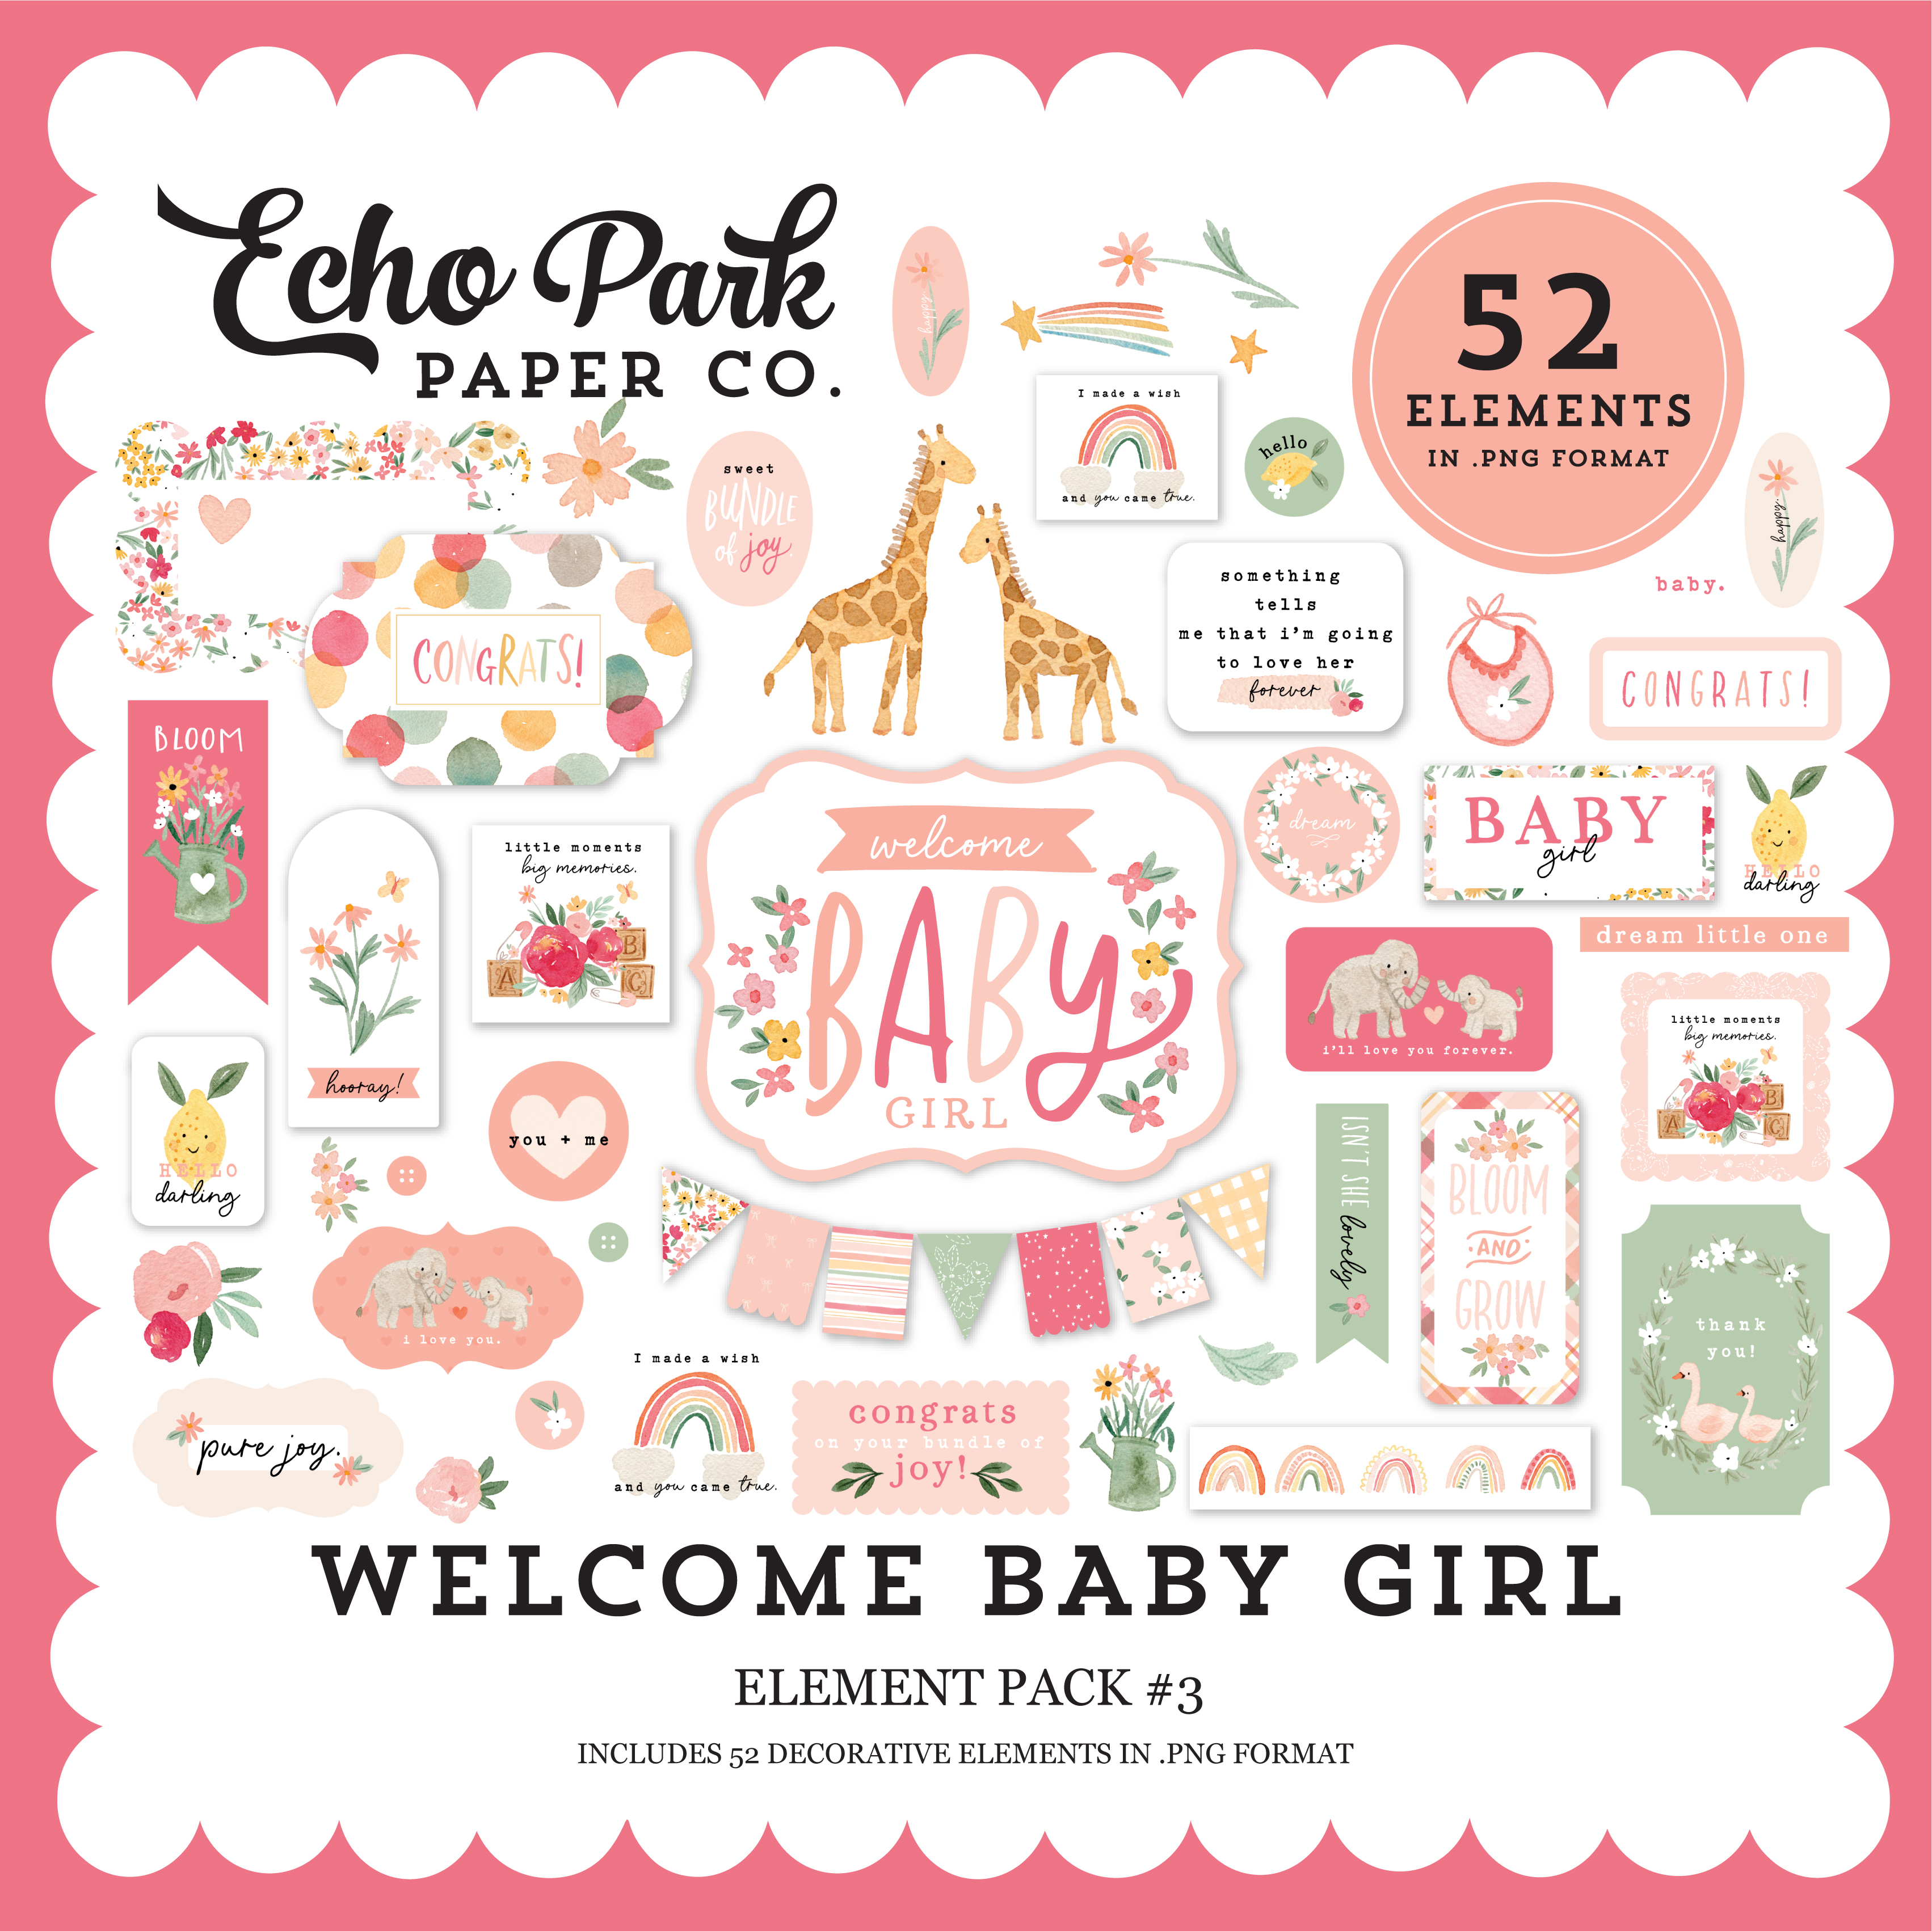 Welcome Baby Girl Element Pack #3